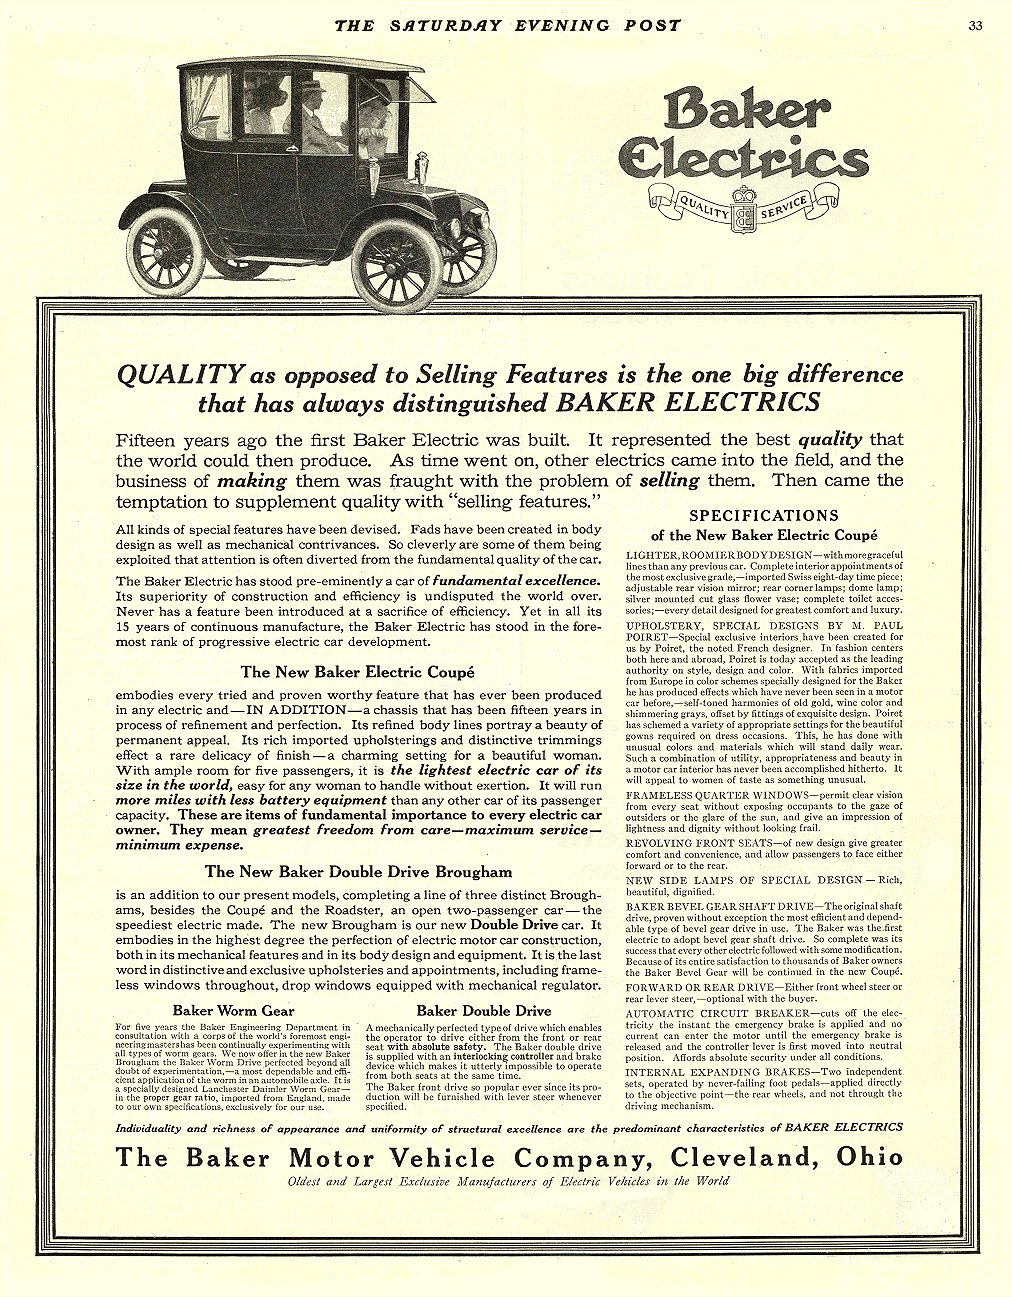 1913 11 8 BAKER Electric Truck QUALITY as opposed to Selling Features THE BAKER MOTOR VEHICLE CO. Cleveland, OHIO THE SATURDAY EVENING POST November 8, 1913 10.25″x13″ page 33